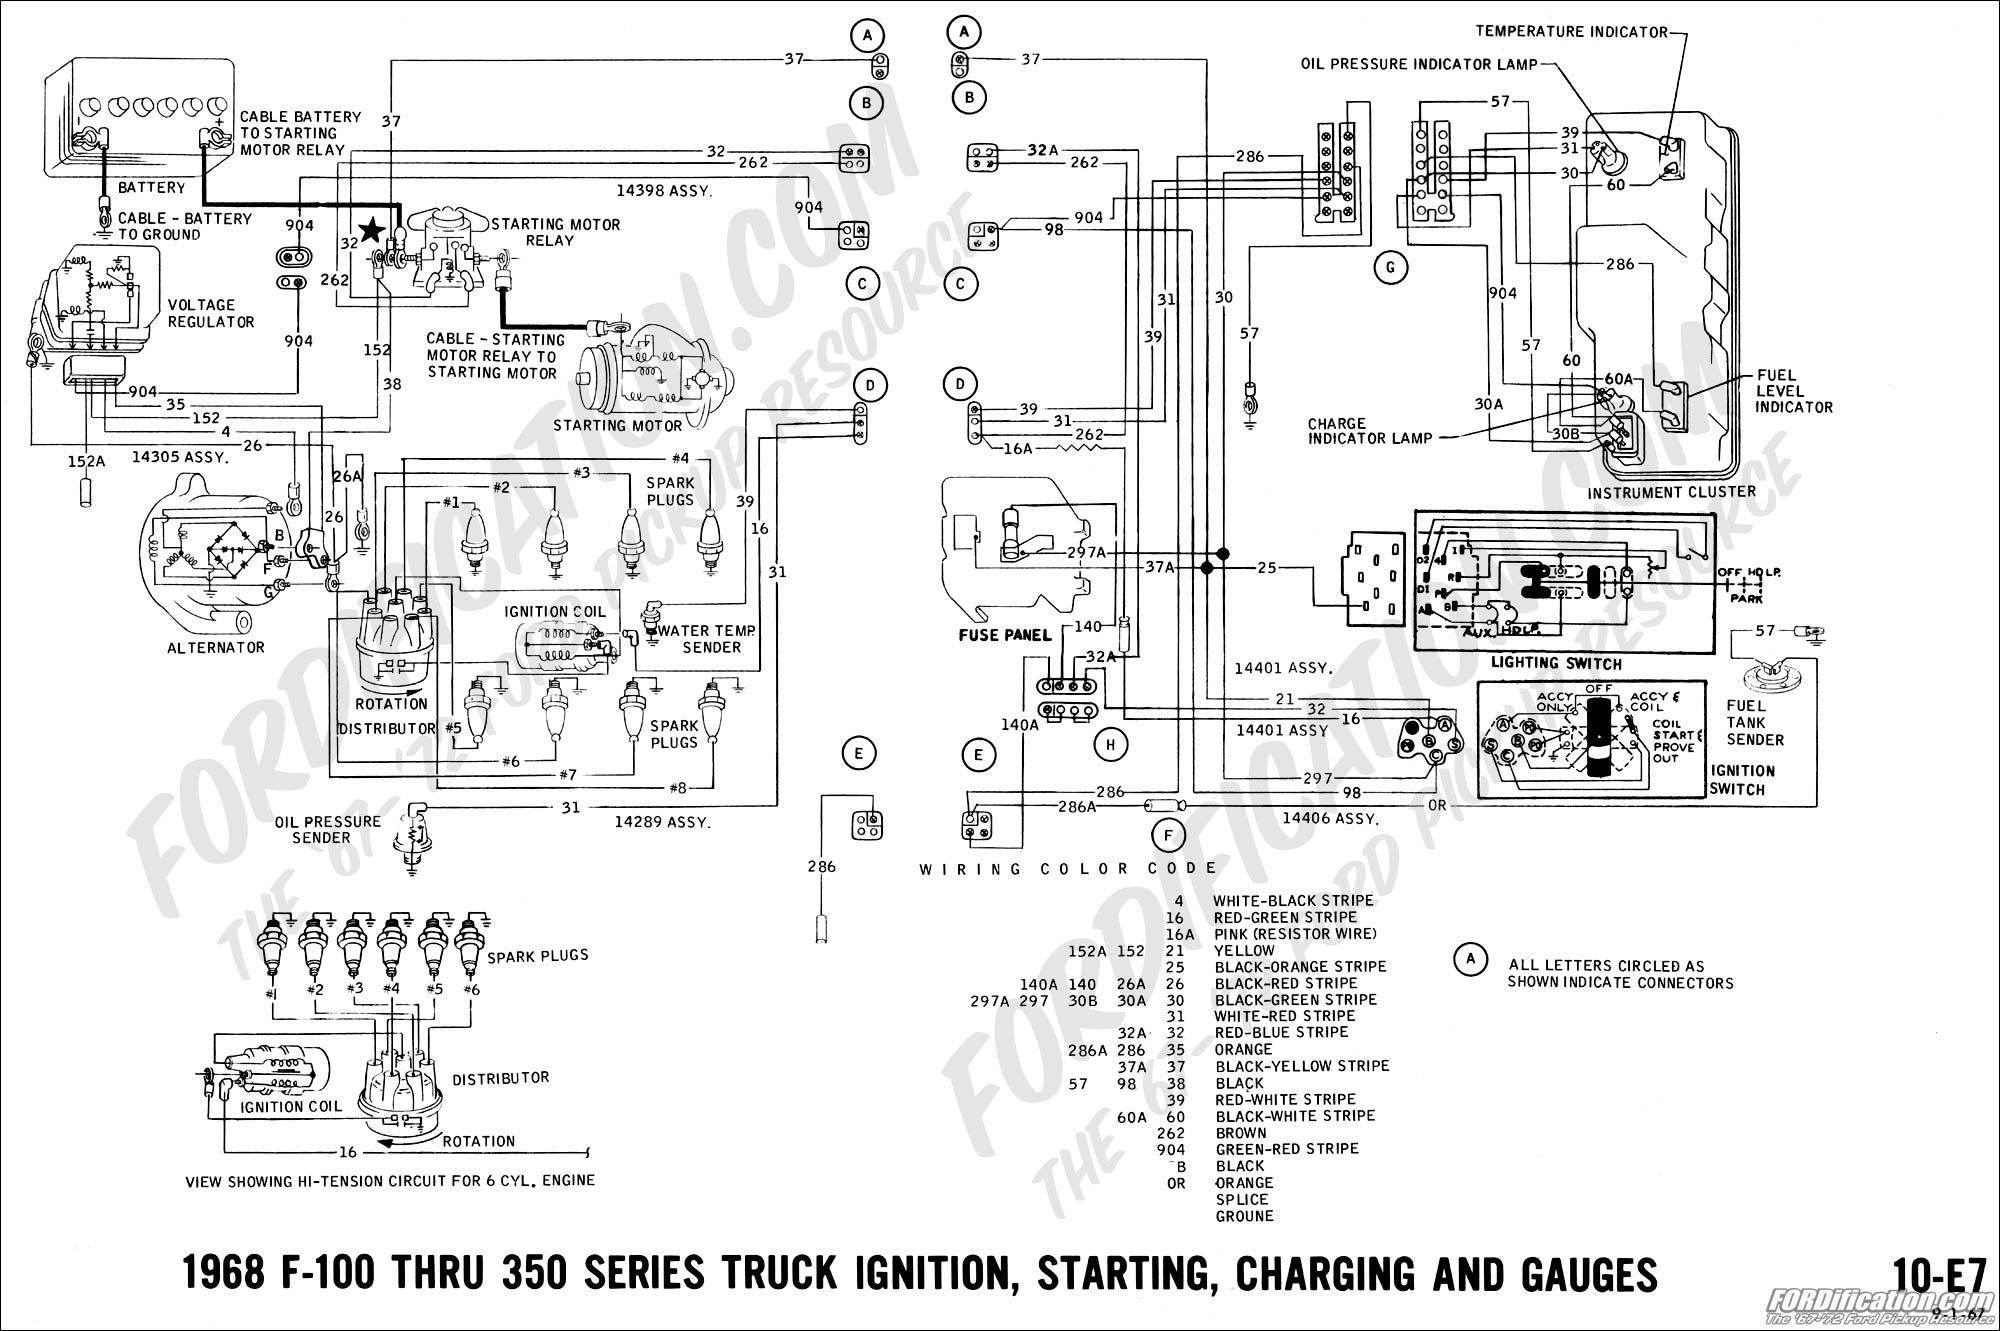 68 09 ford truck technical drawings and schematics section h wiring 1999 F150 Radio Wiring Diagram at crackthecode.co